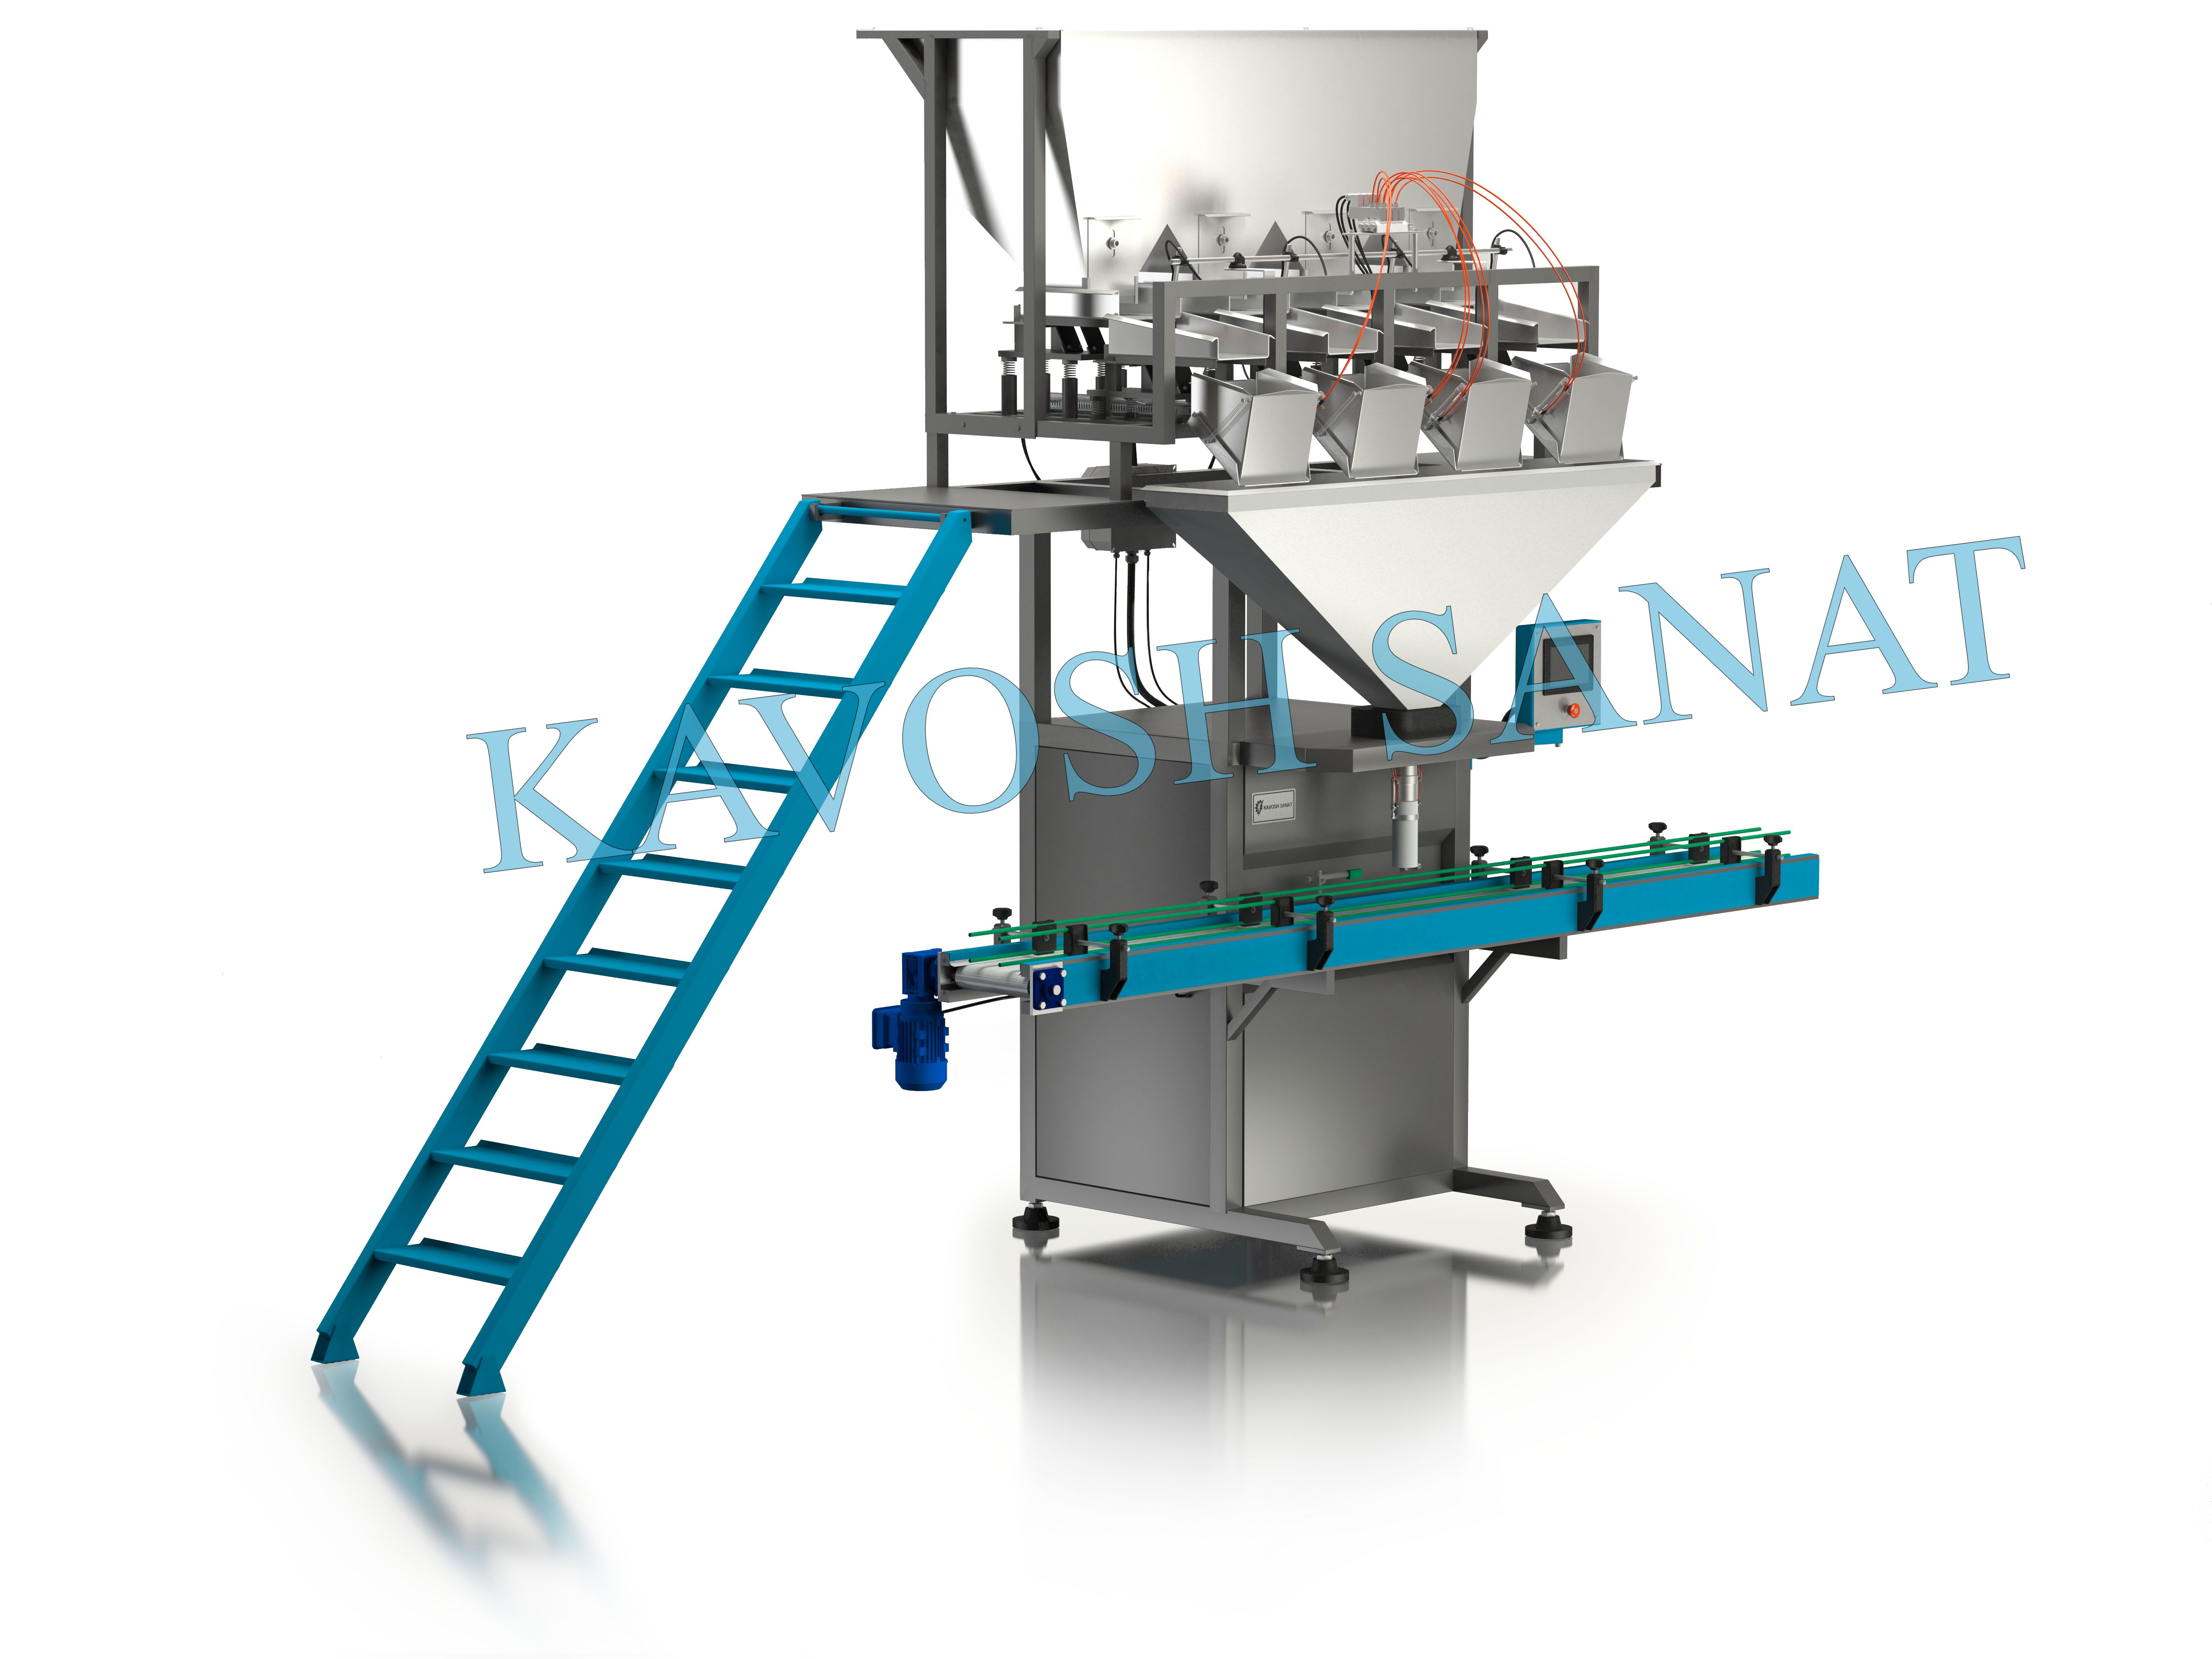 Kavosh Sanat - Granule can filler machine